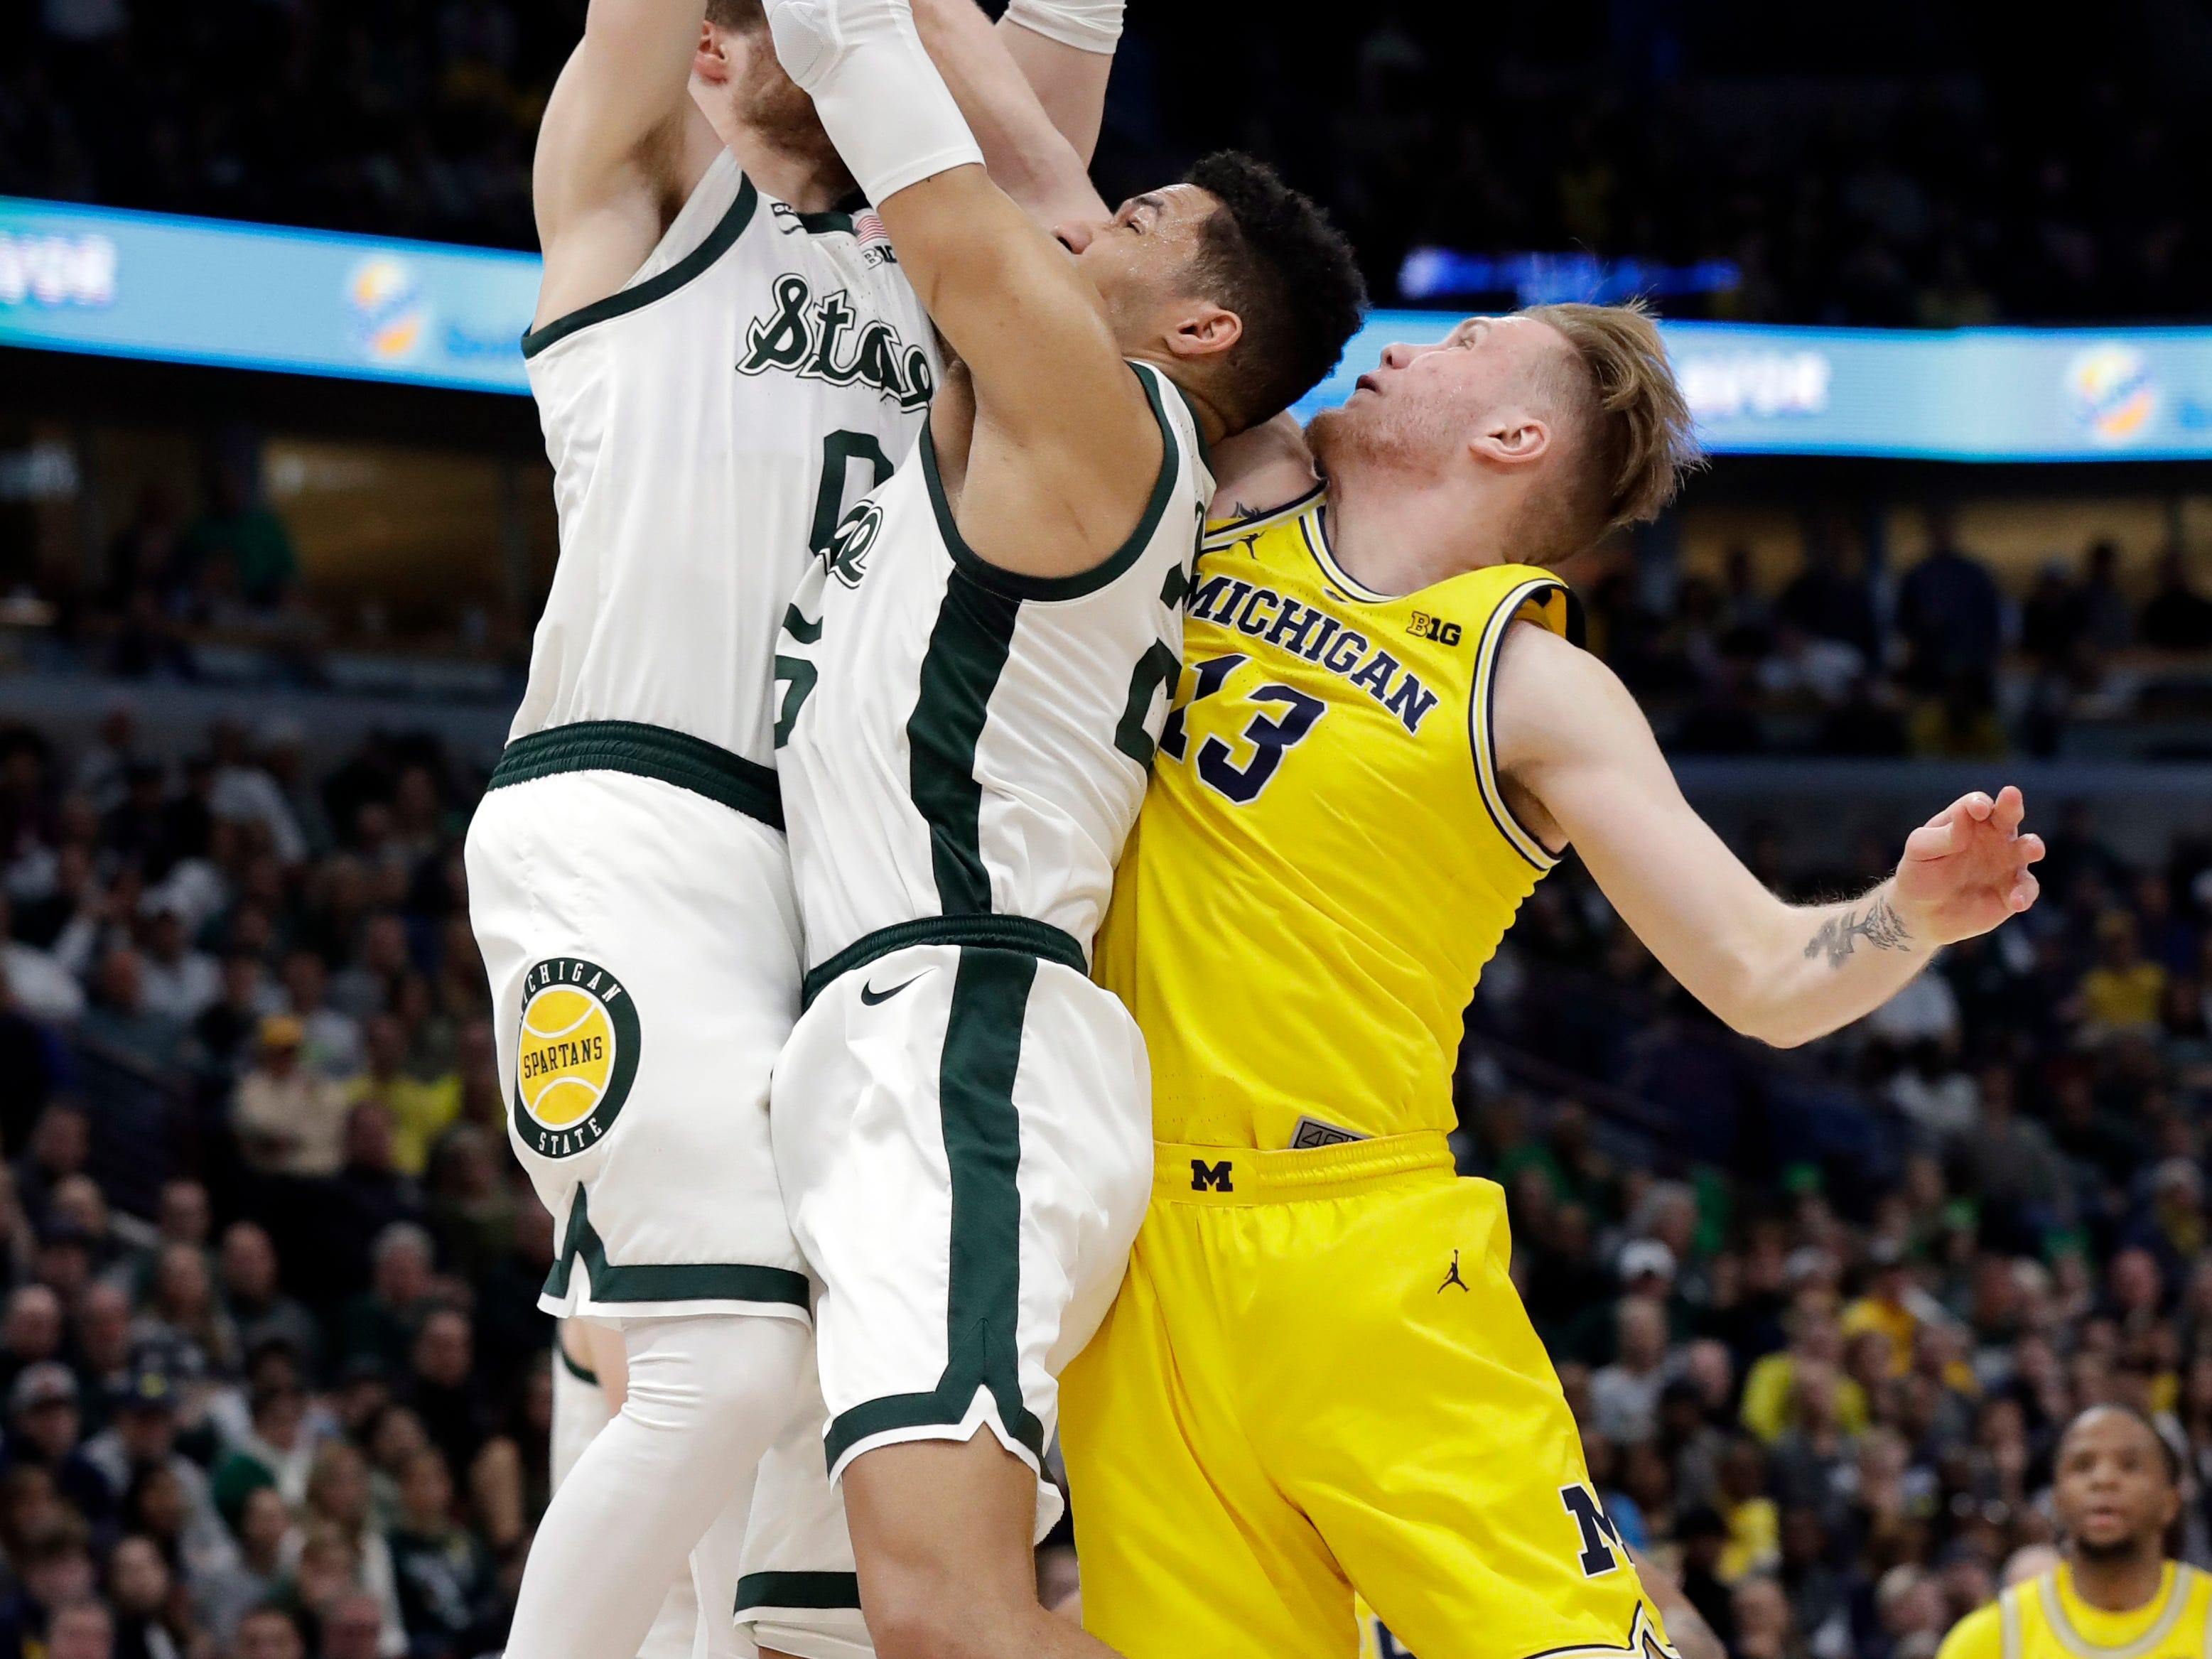 Michigan State's Kyle Ahrens (0), Kenny Goins (25) and Michigan's Ignas Brazdeikis (13) battle for a rebound during the first half.